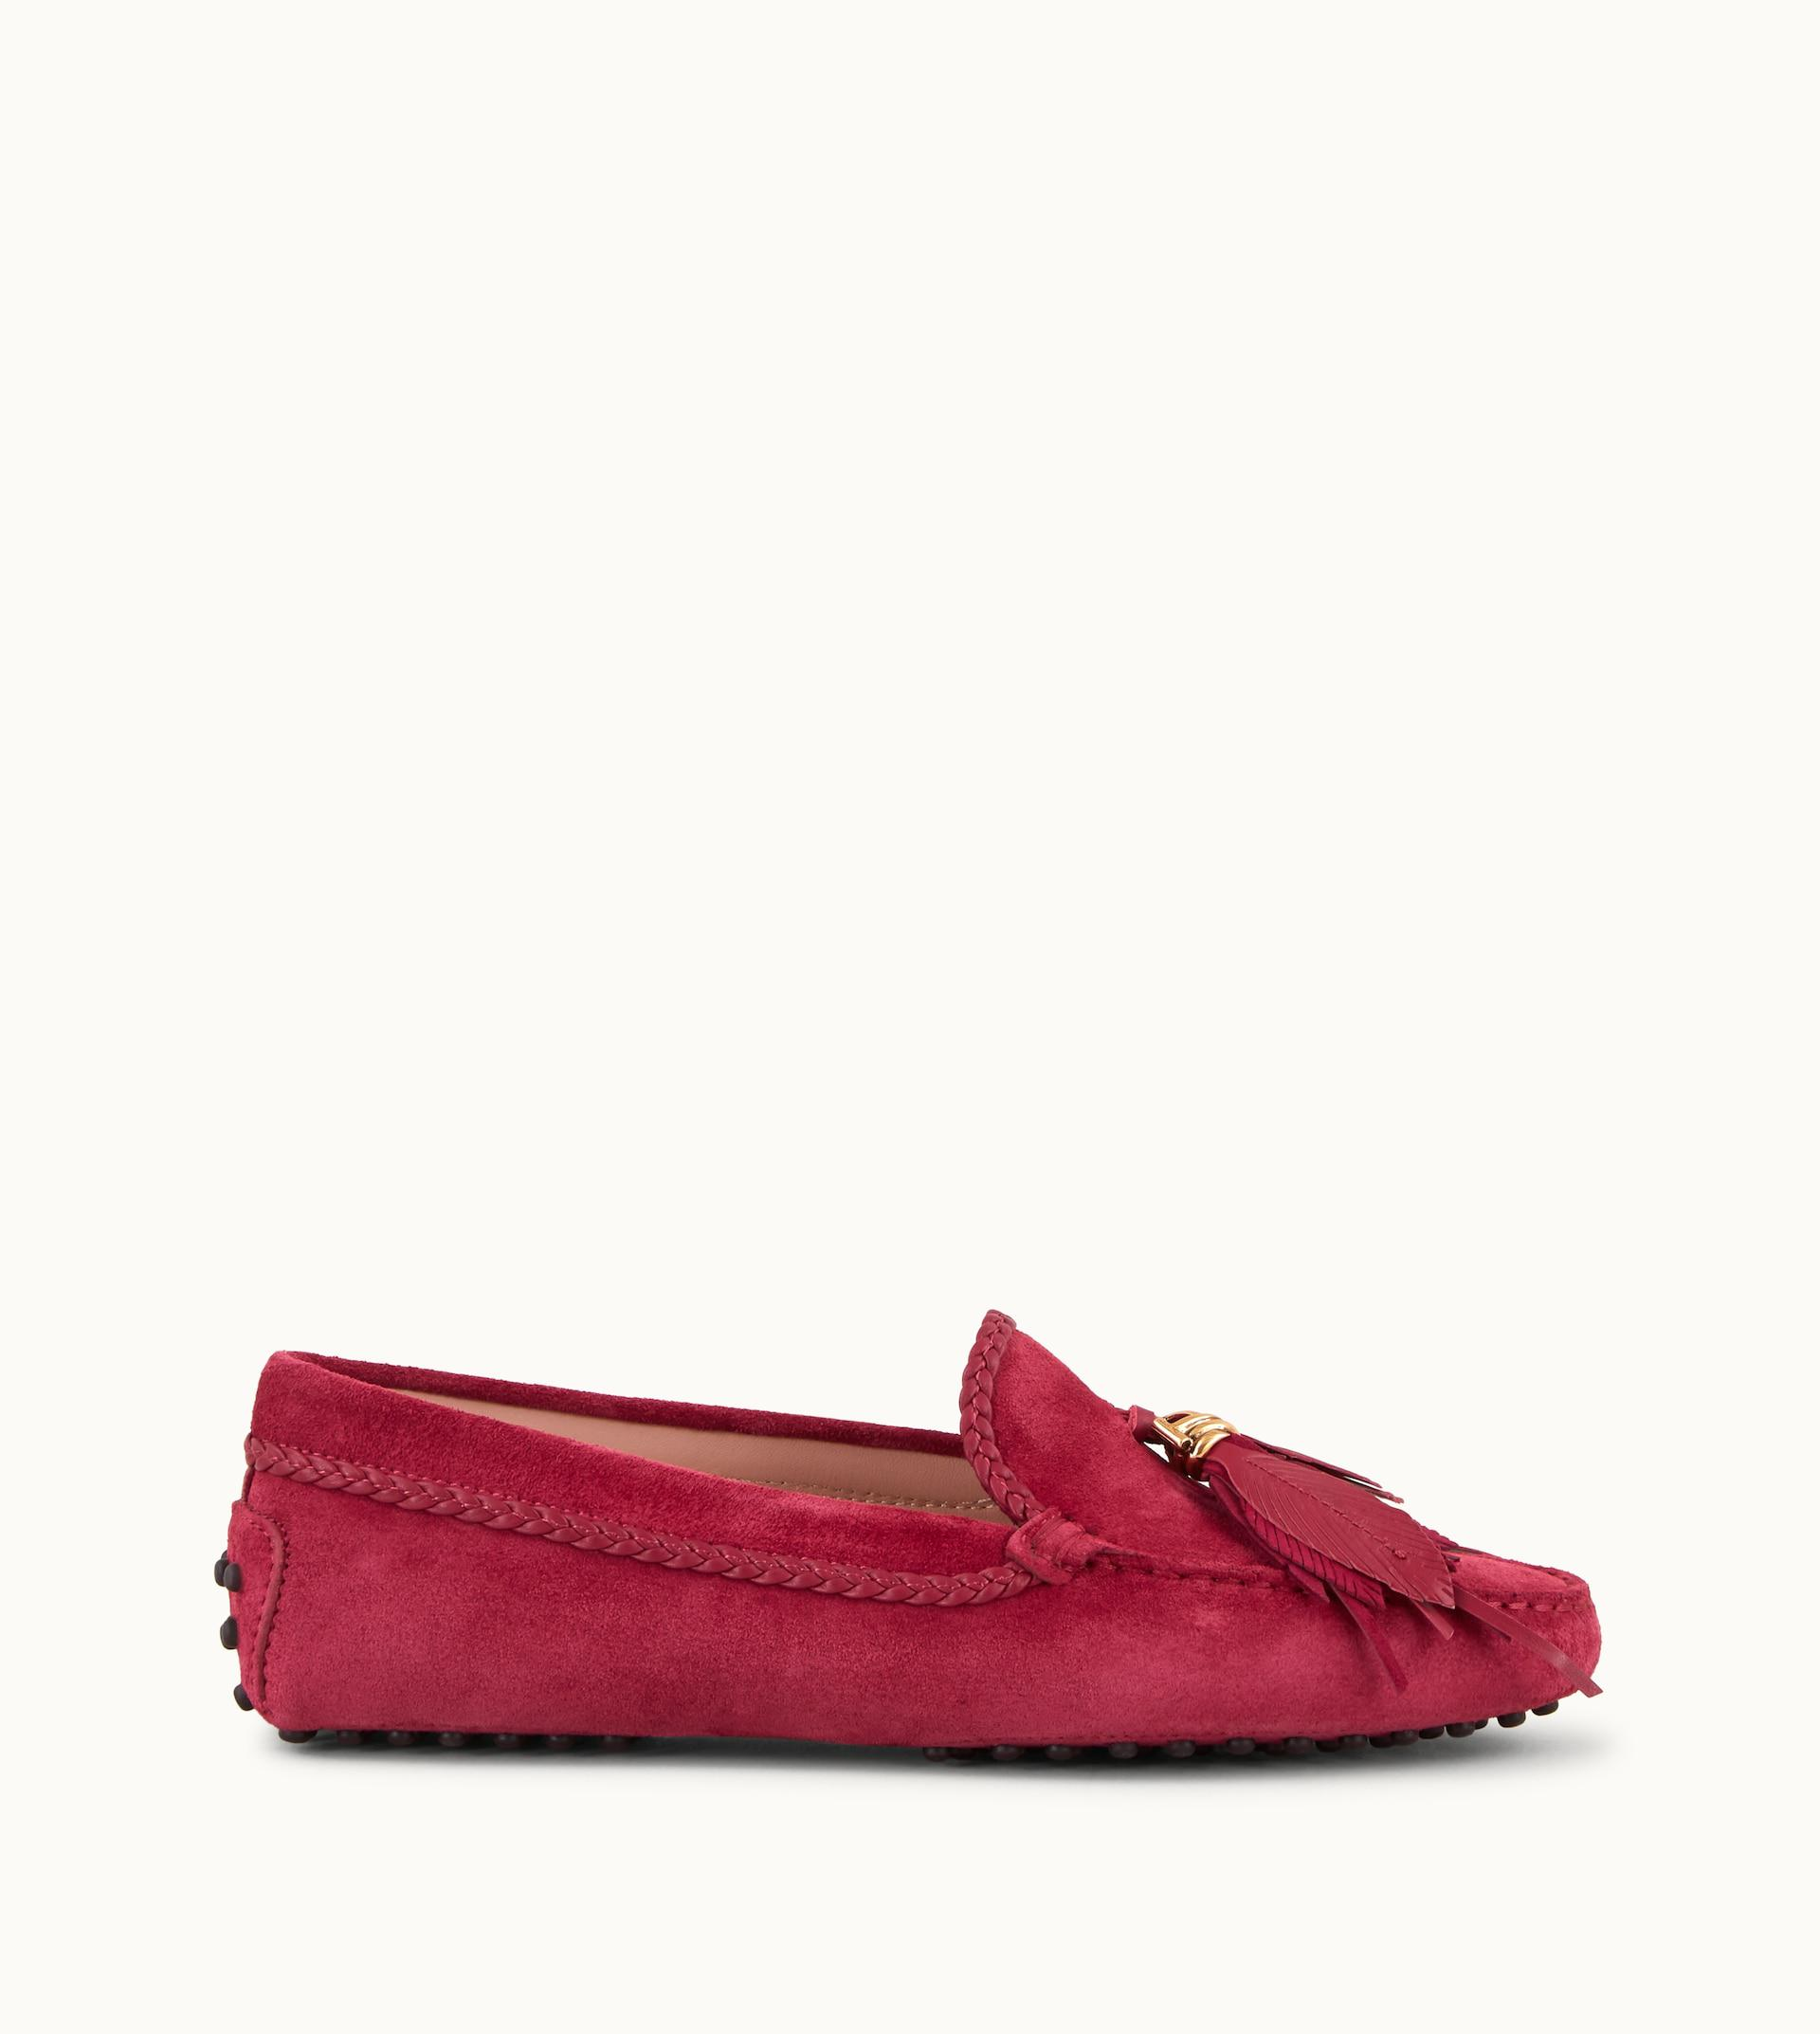 208dc339941 Lyst - Tod s Gommino Driving Shoes In Suede in Red